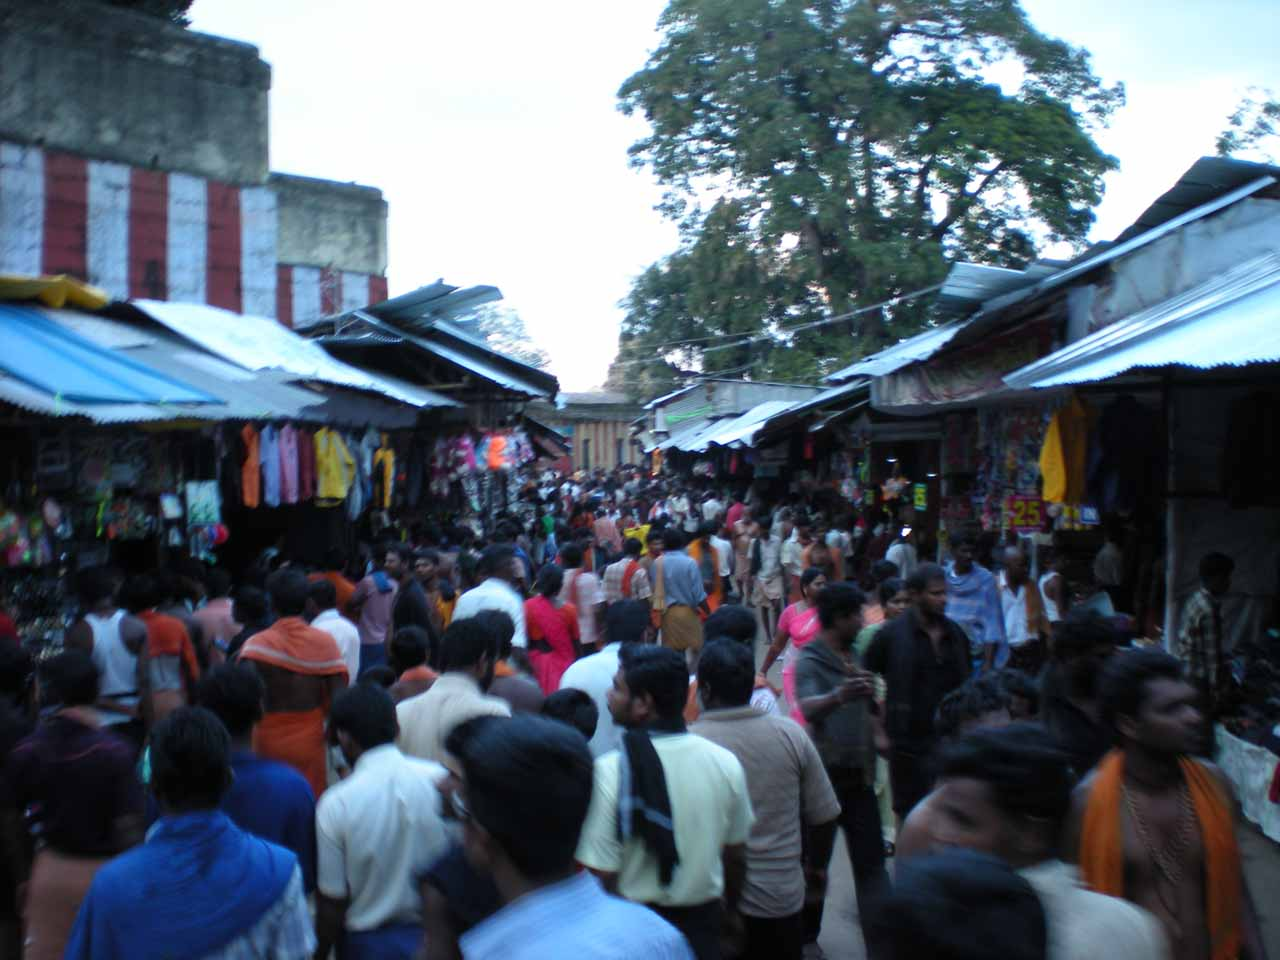 Mass of humanity at the marketplace